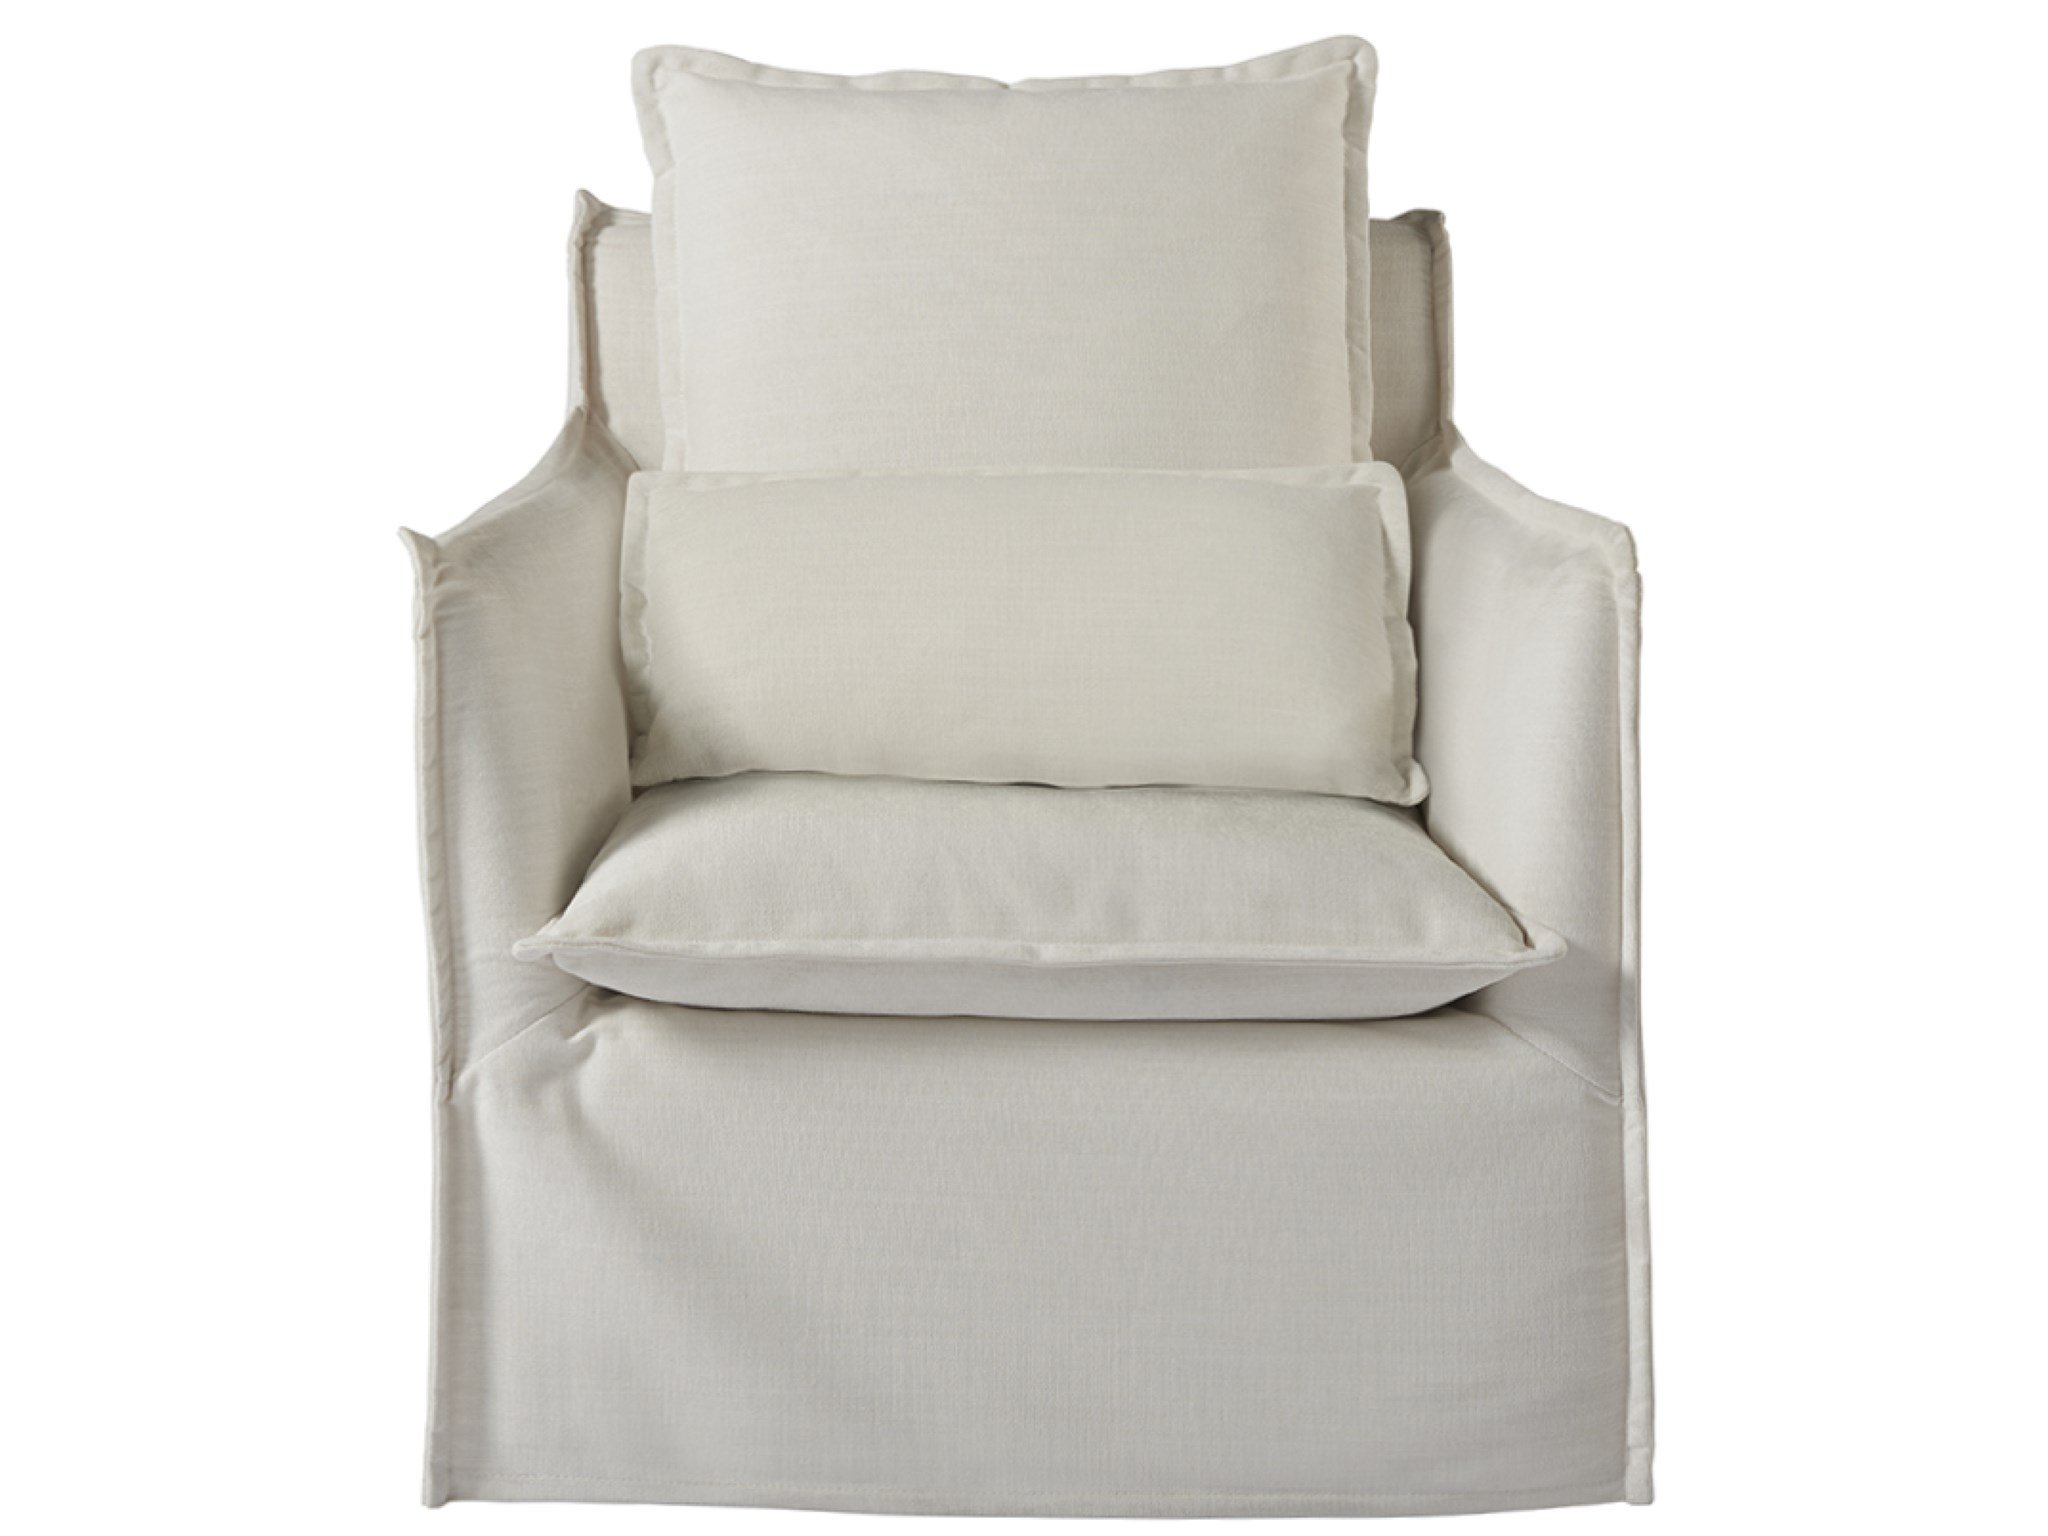 Siesta Key Swivel Chair - Special Order